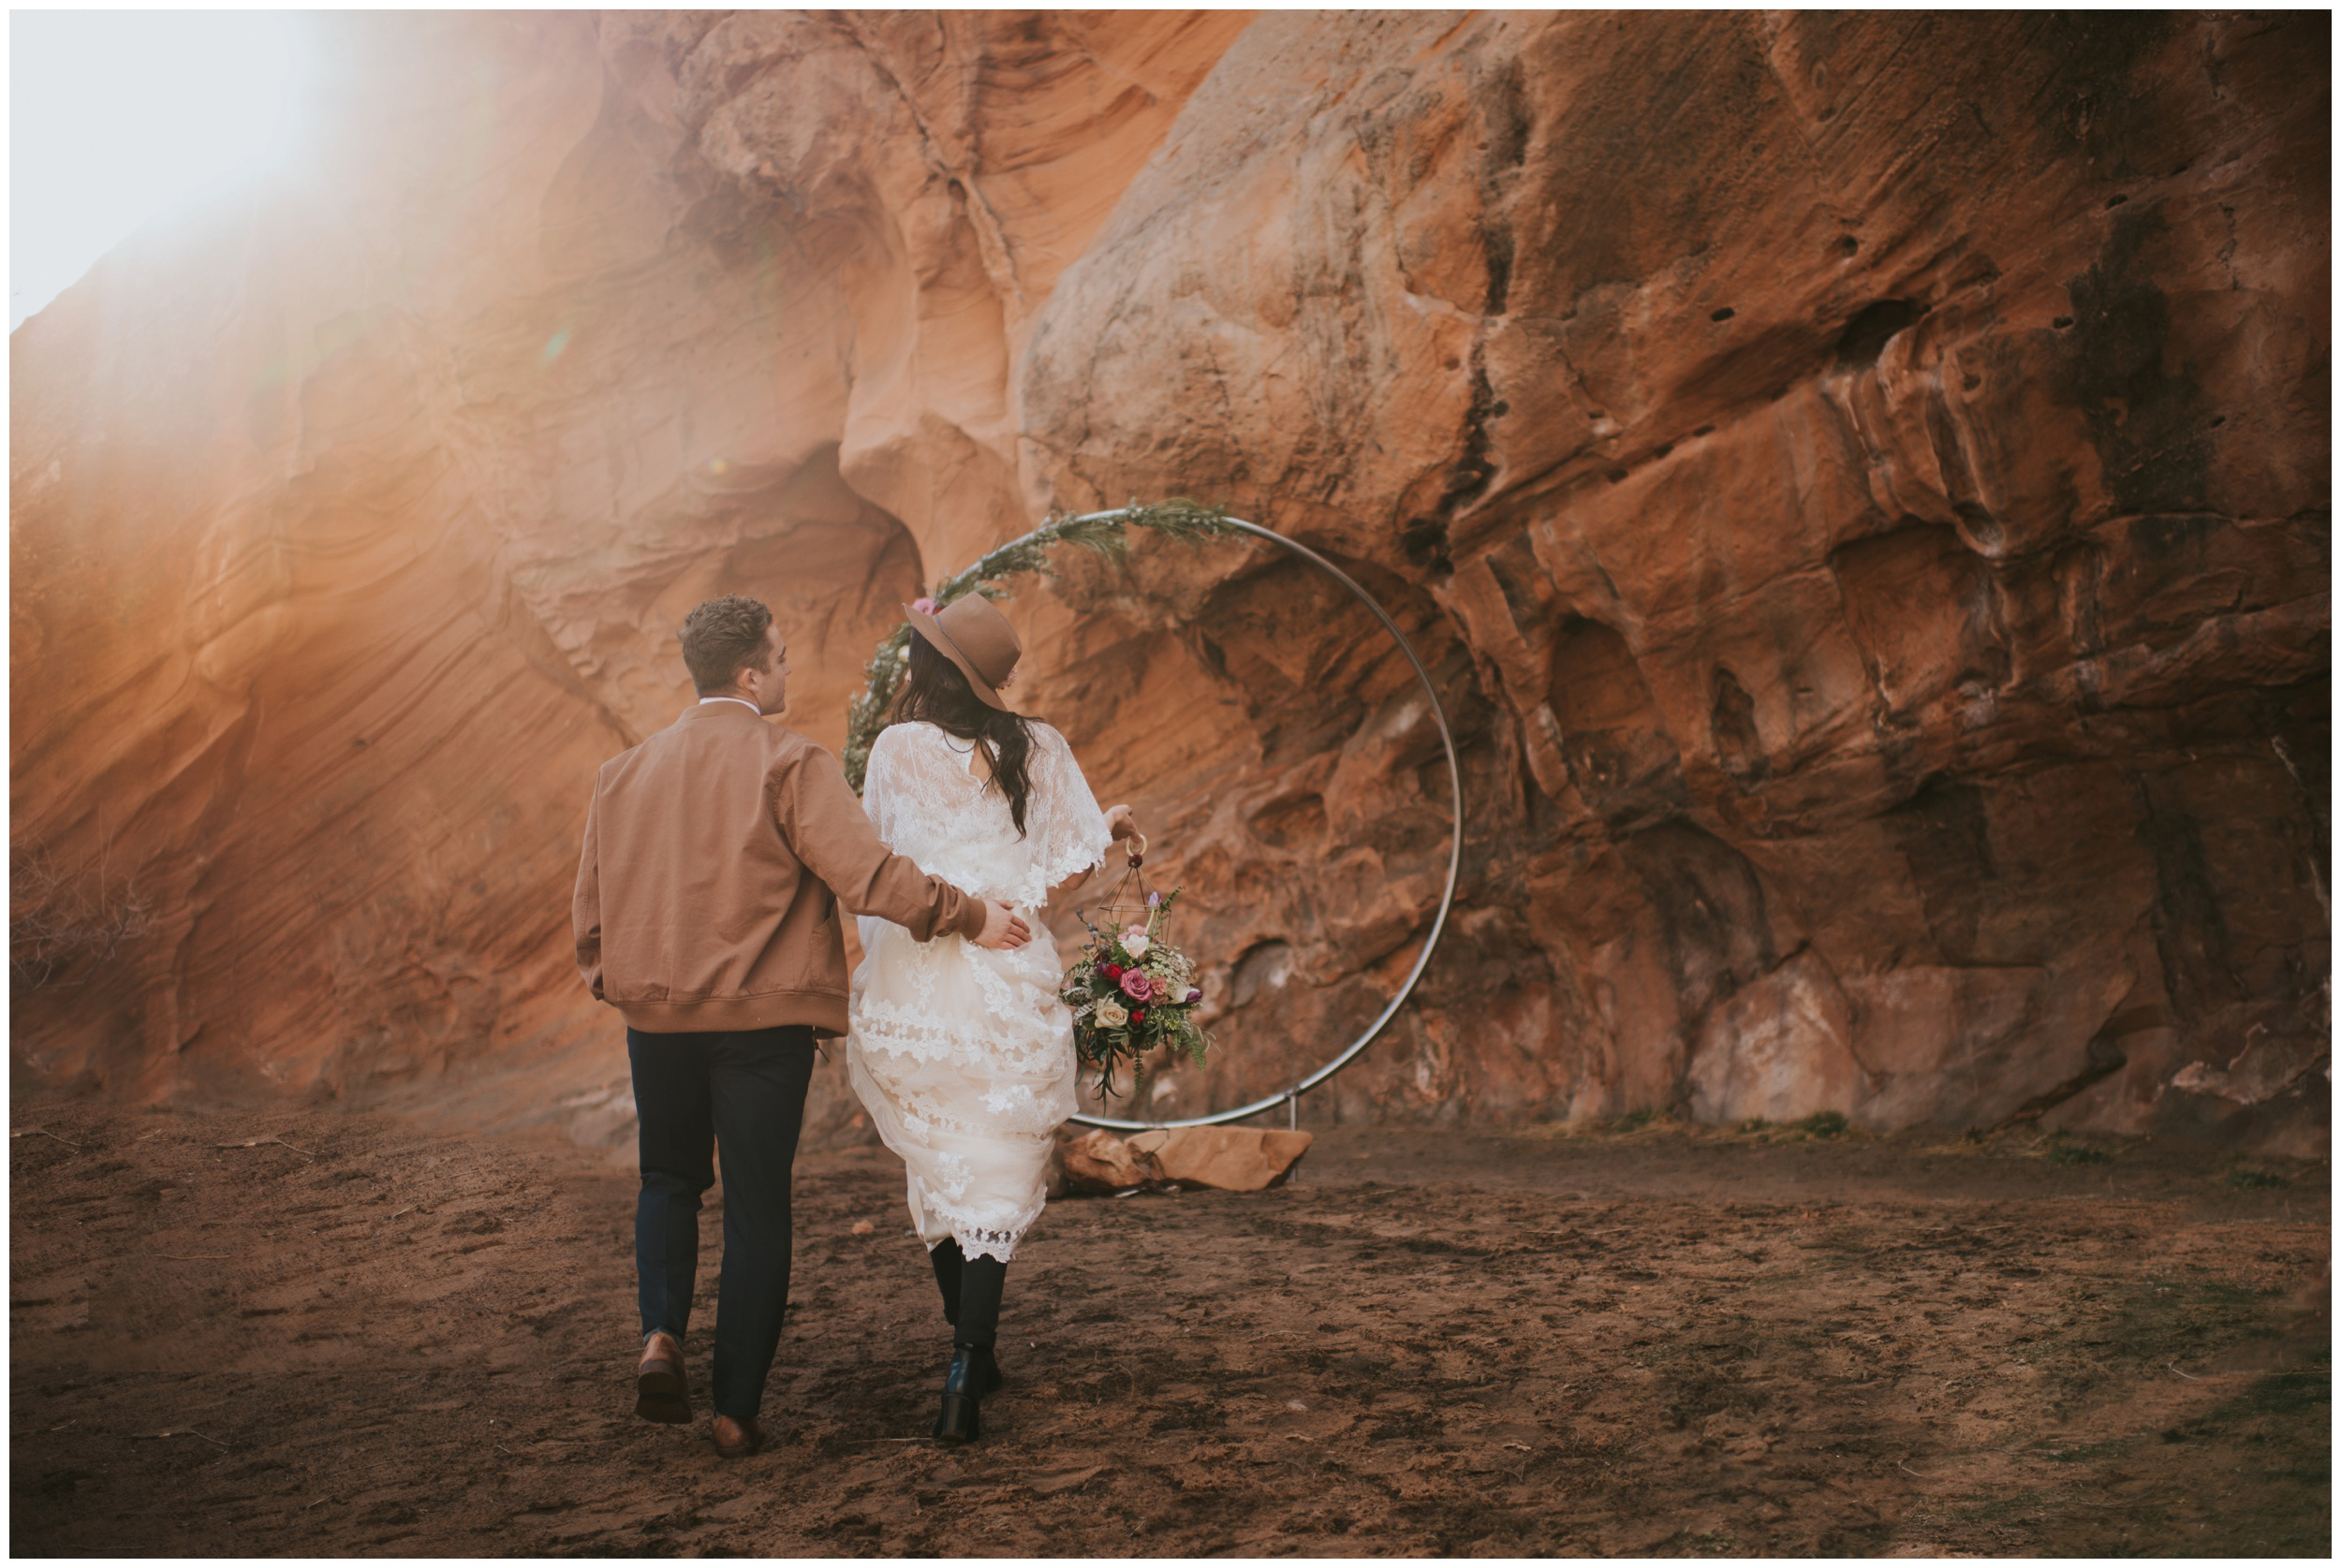 redrockutah-idahophotographer-utahphotographer-wedding-8.jpg